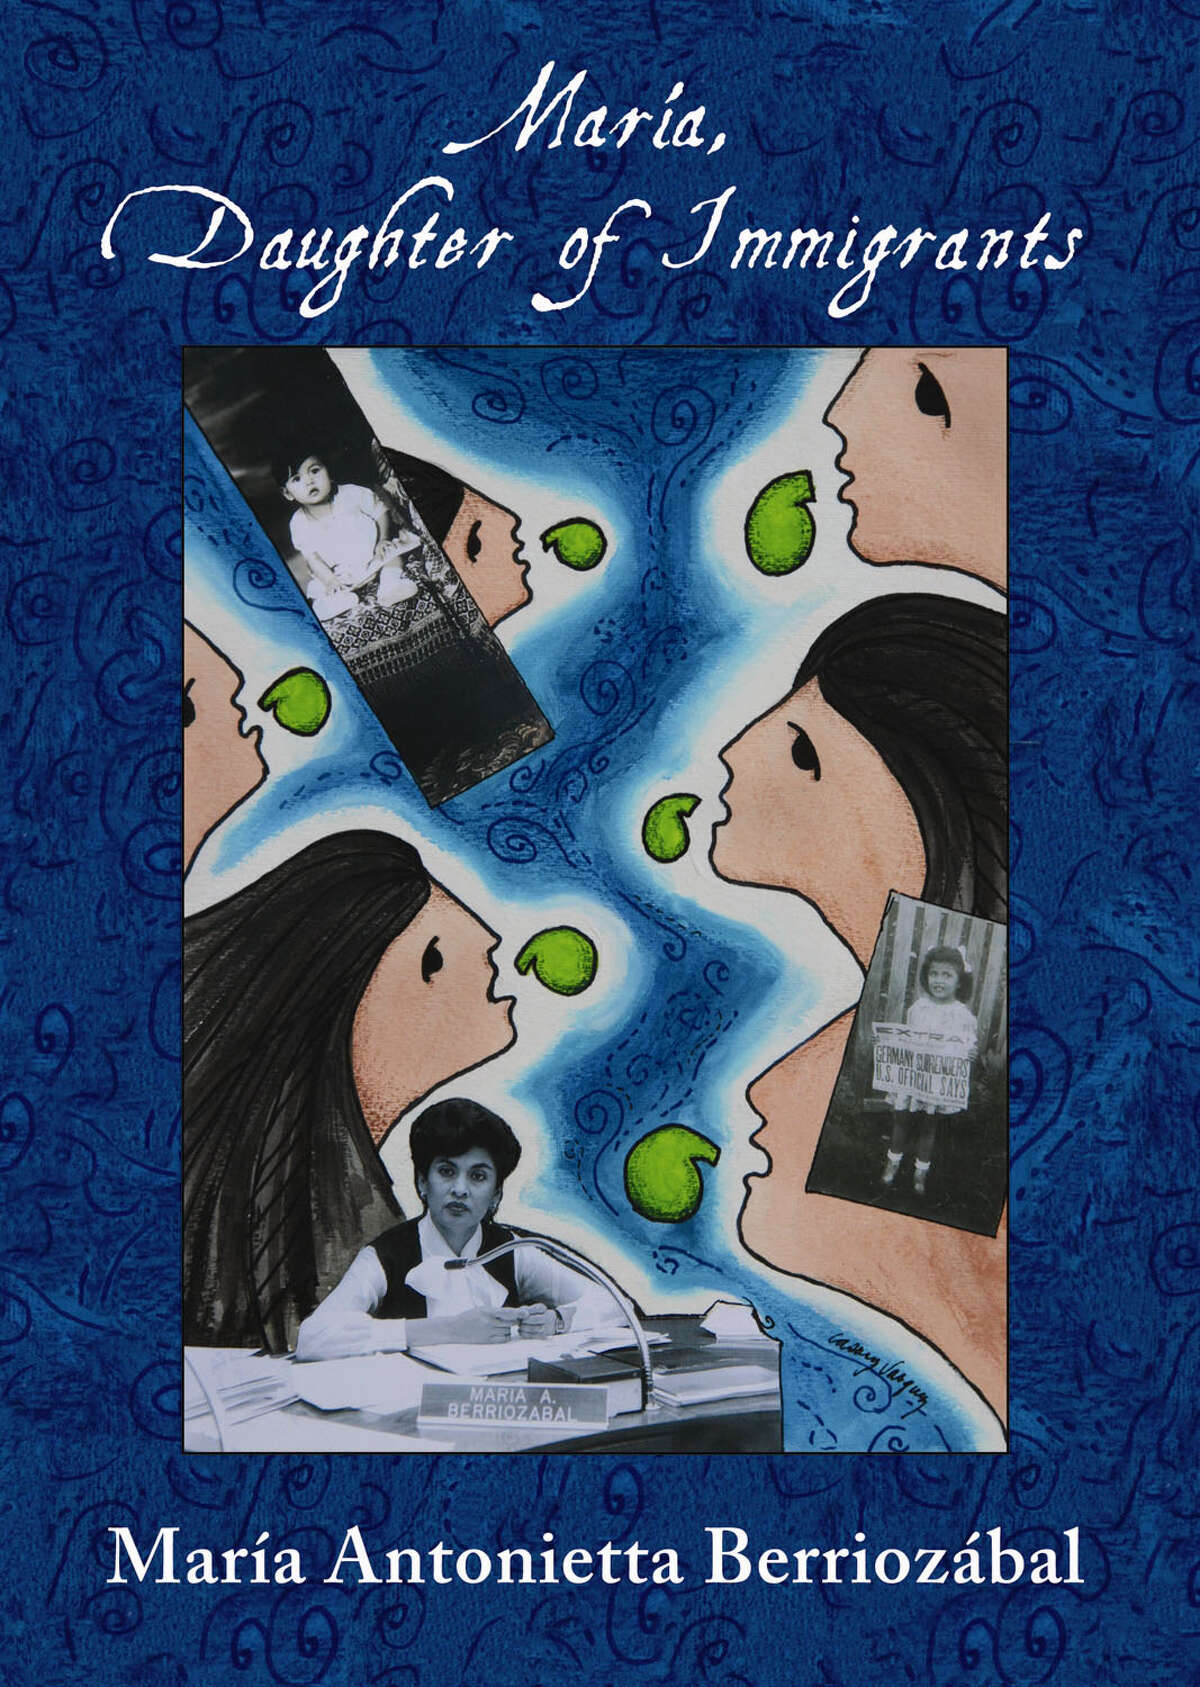 """María Antonietta Berriozábal is a woman with a mission and a plan, and they have taken many forms in every chapter of her remarkable life. As she relates in her powerfully candid and poetic memoir, """"Maria, Daughter of Immigrants,"""" that mission came to her at the age of 14."""